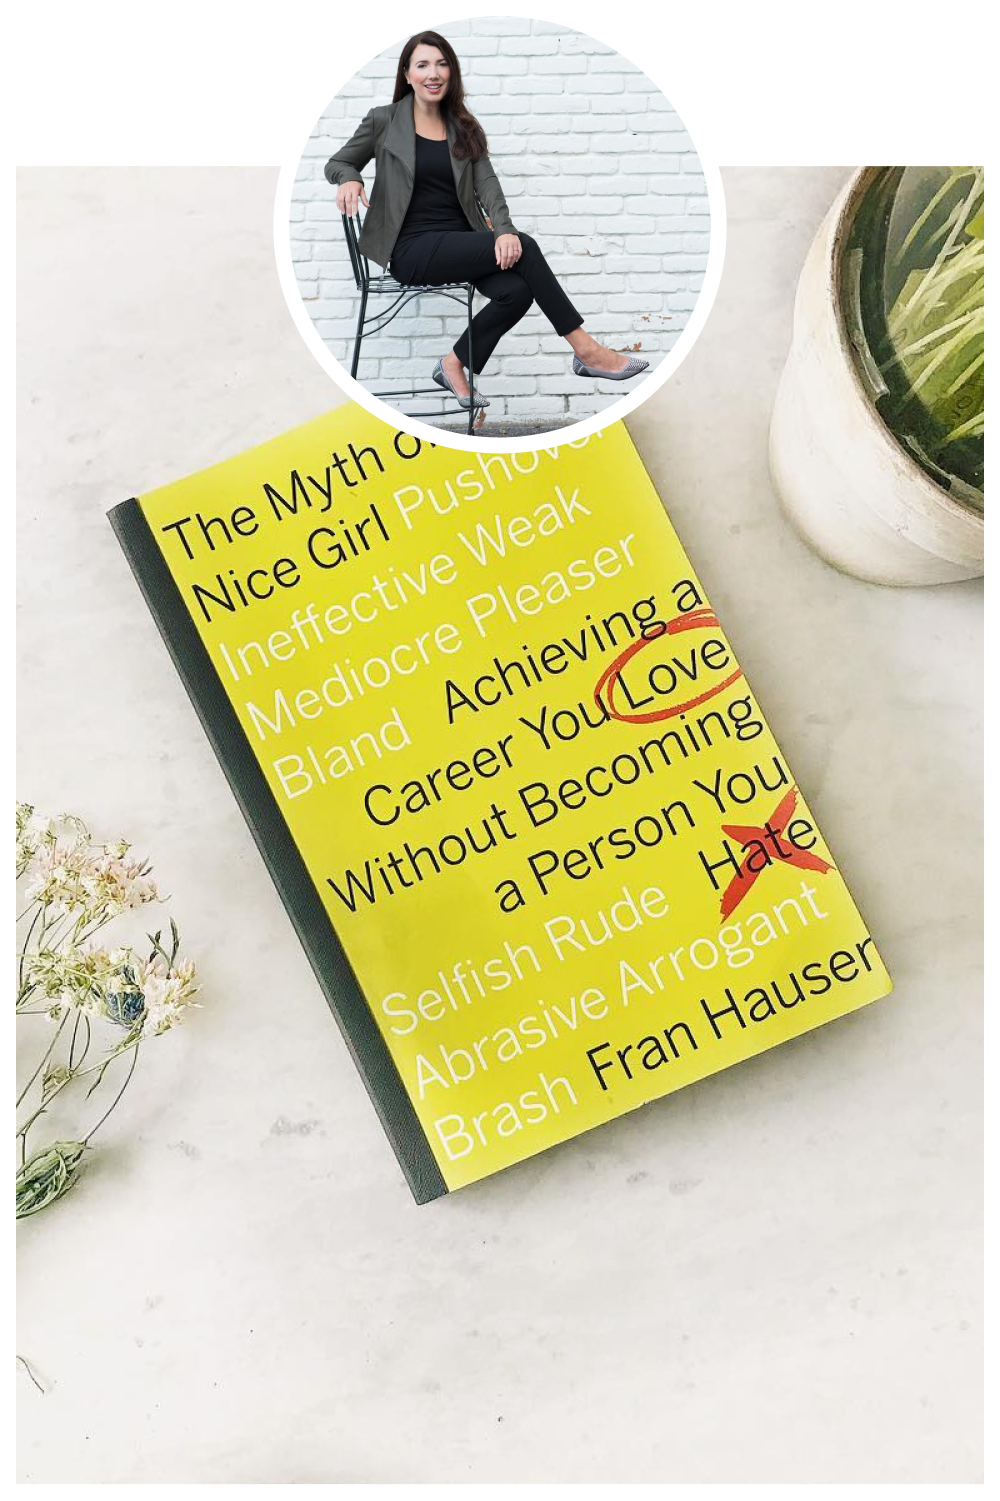 Myth of the Nice Girl by Fran Hauser